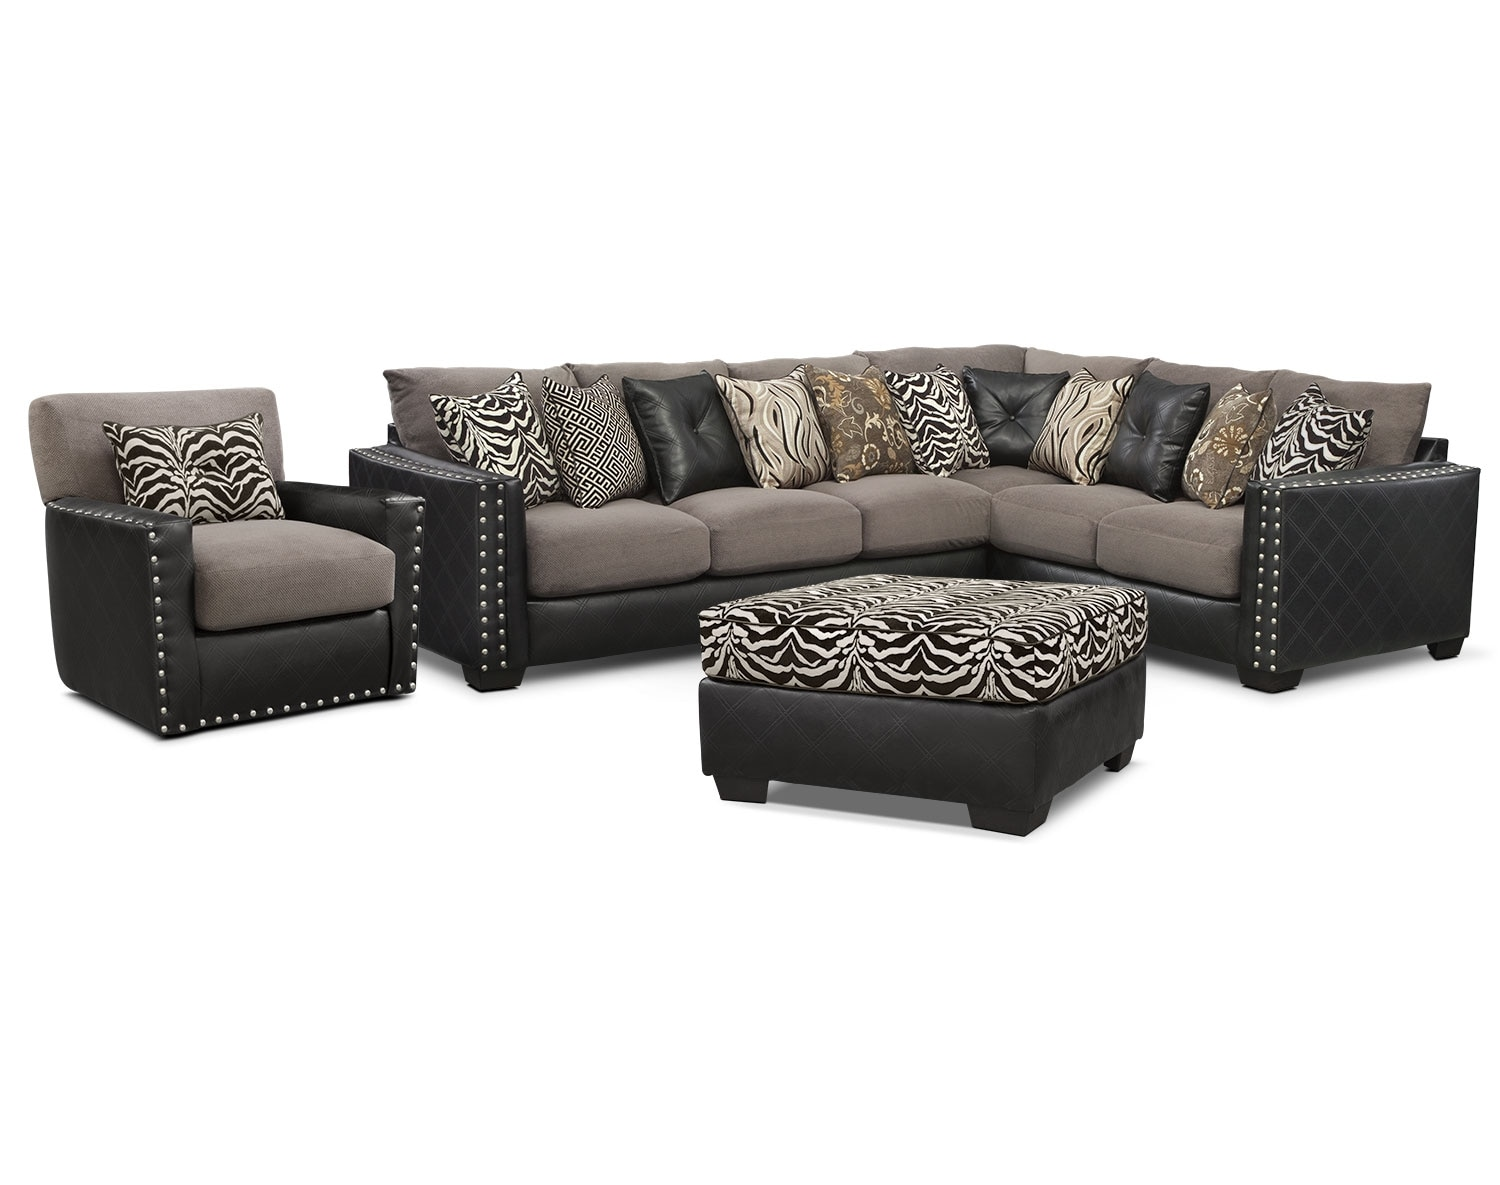 [The Lola Sectional Collection]